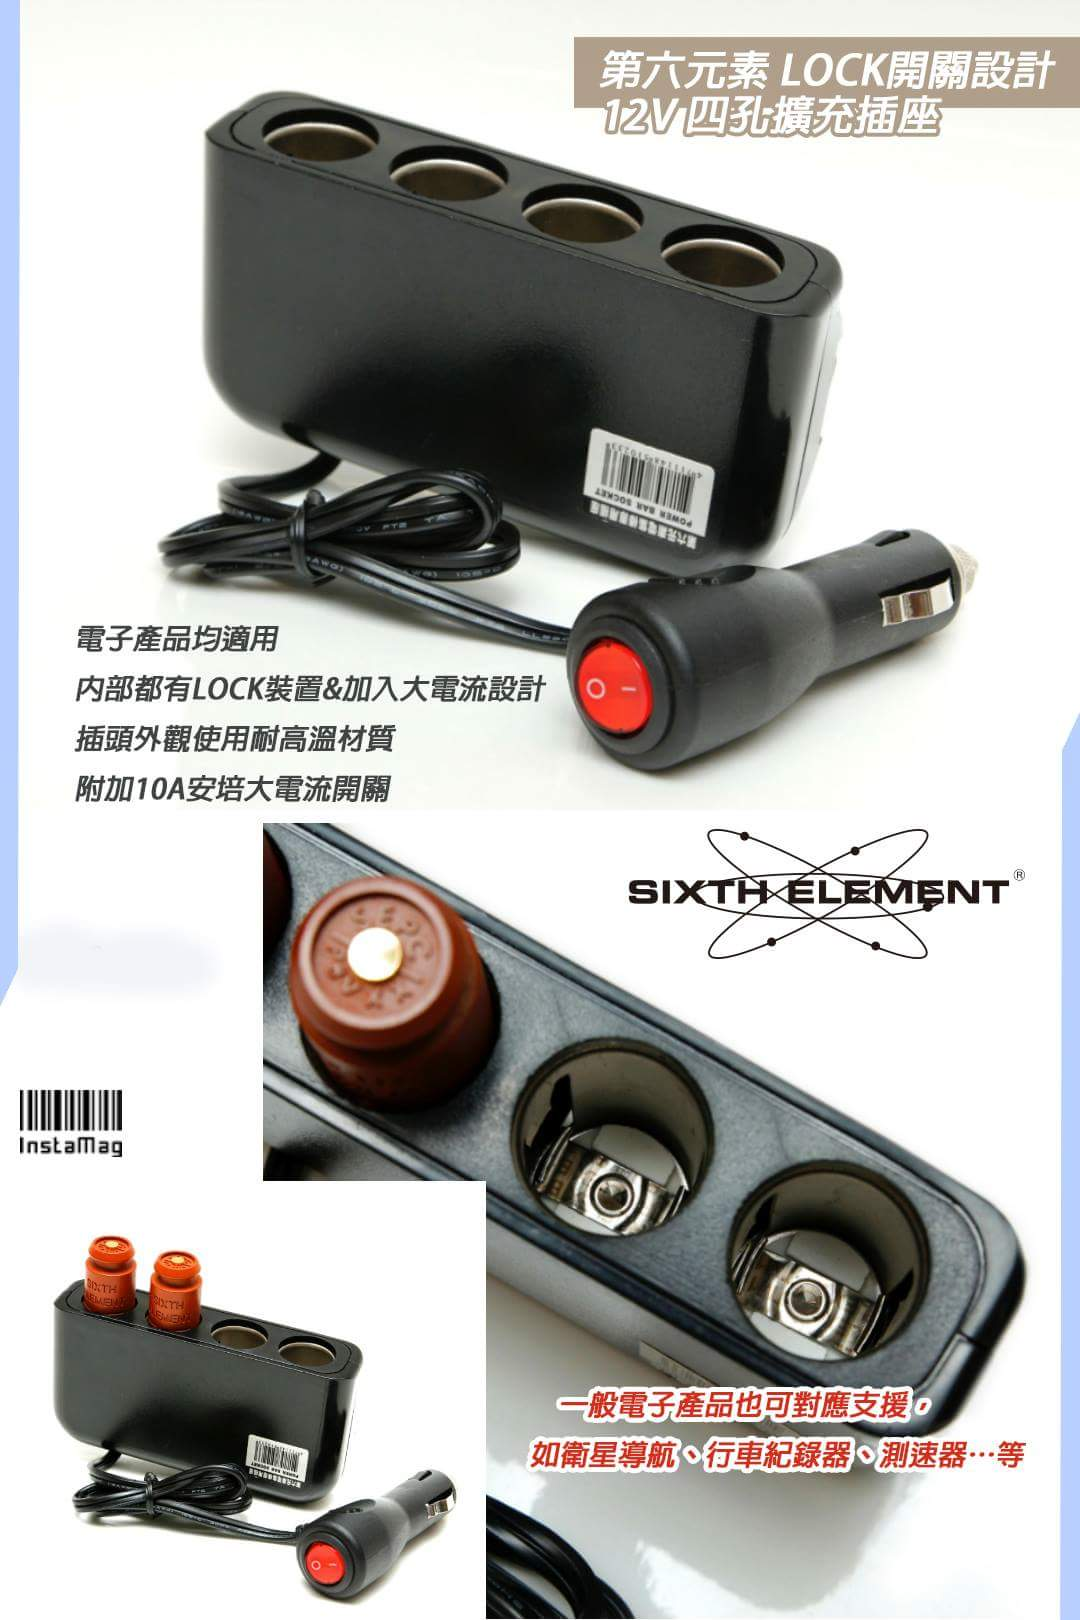 Sixth Element Power Bar PB-4 DC Socket - install at Cigarette Lighter Compartment